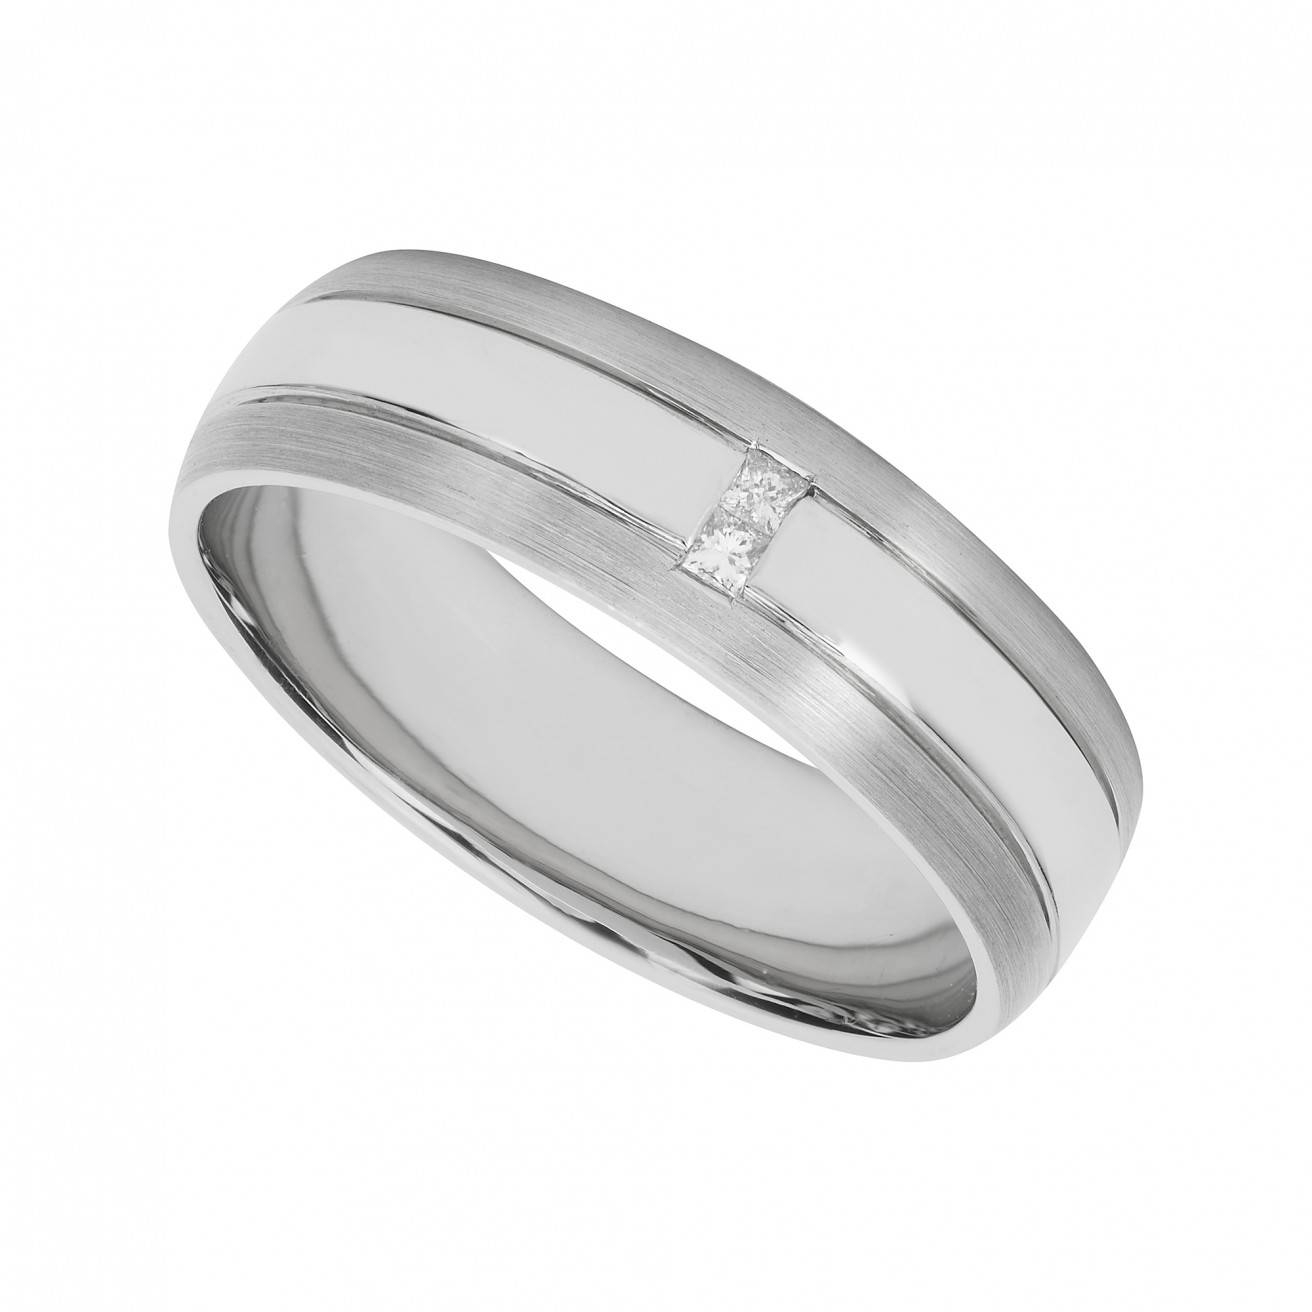 Palladium Wedding Rings Regarding Mens Palladium Wedding Rings (Gallery 10 of 15)